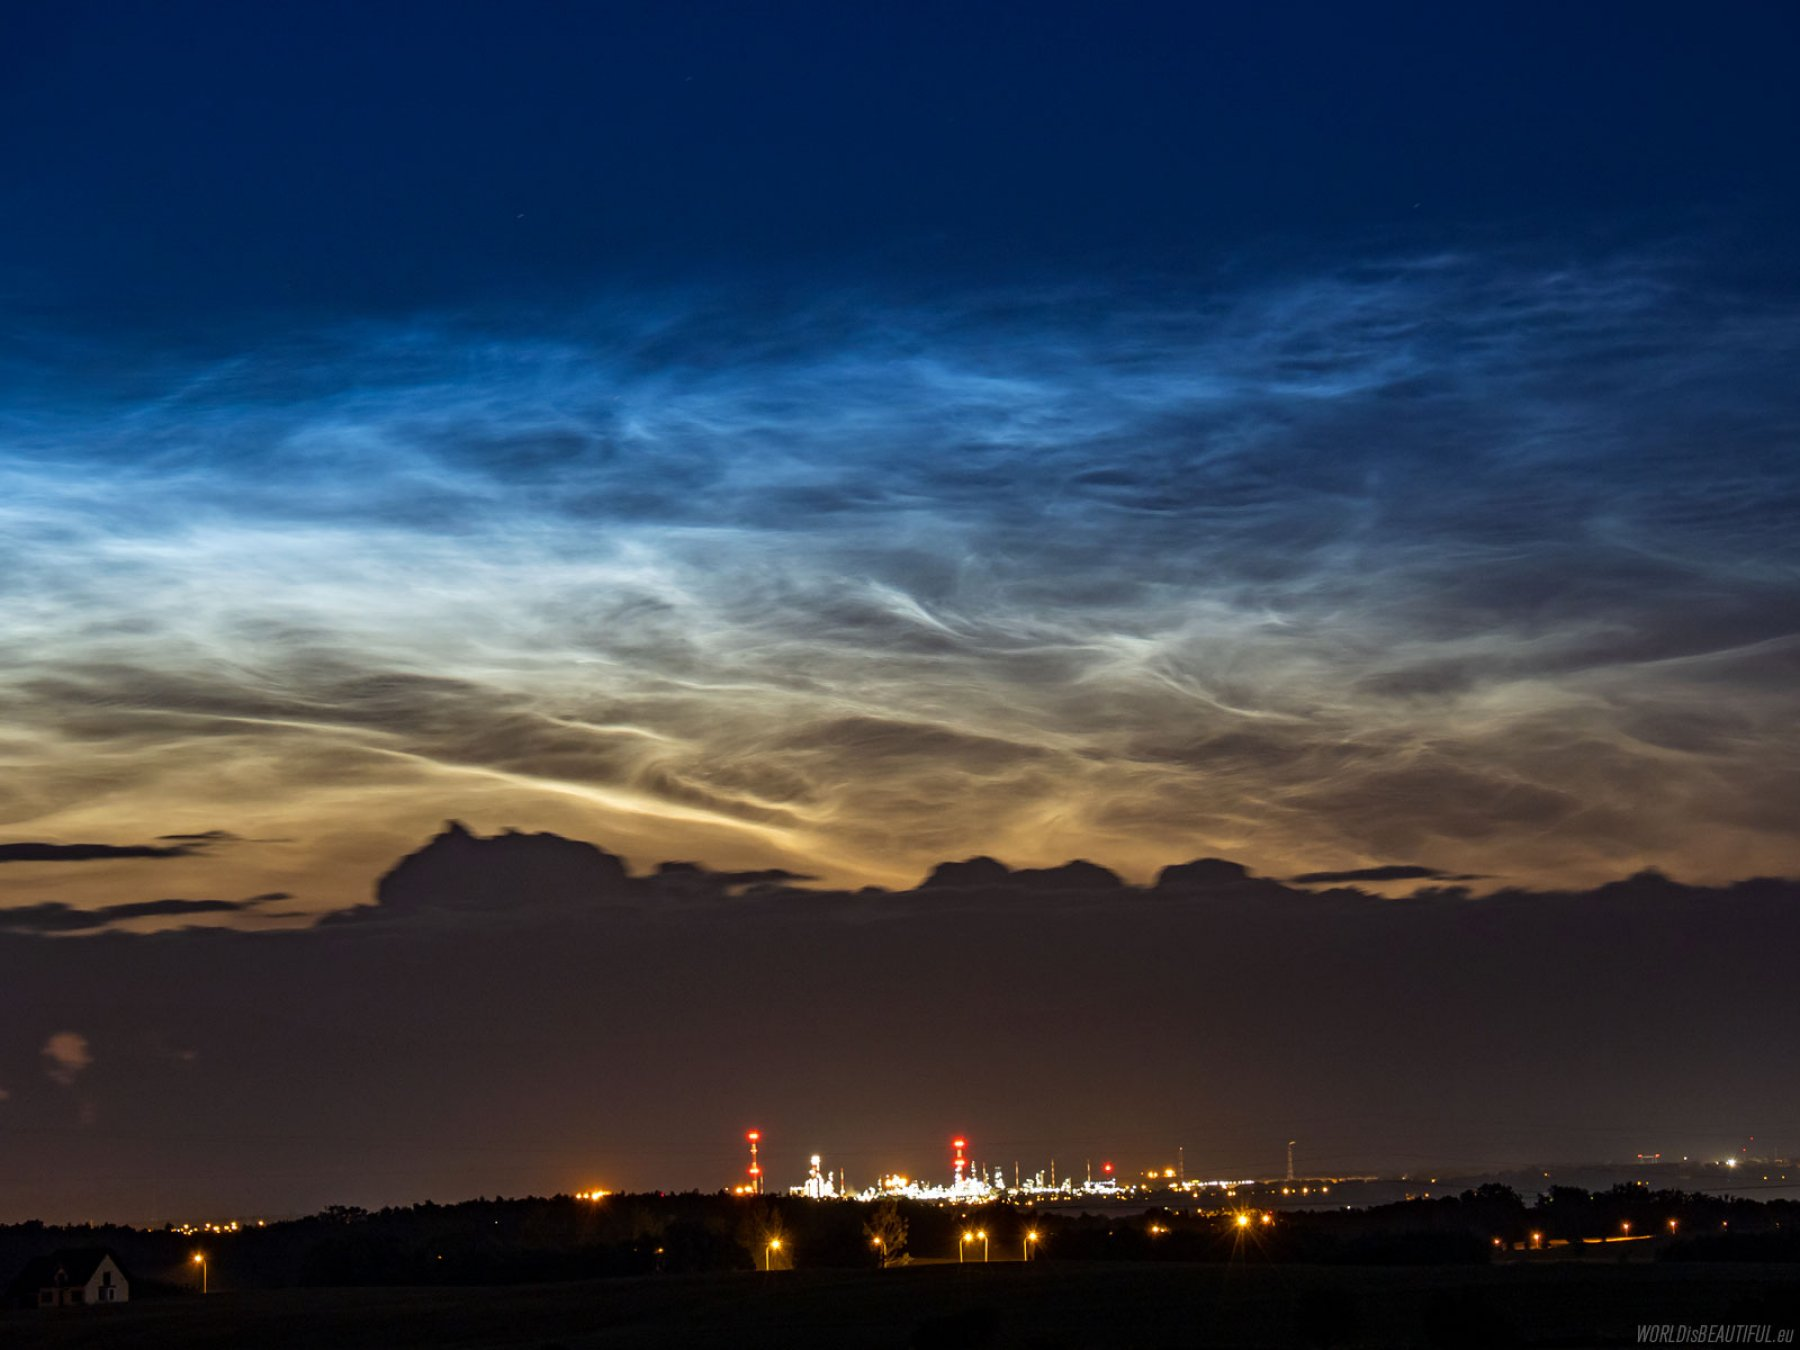 Noctilucent clouds - NLC